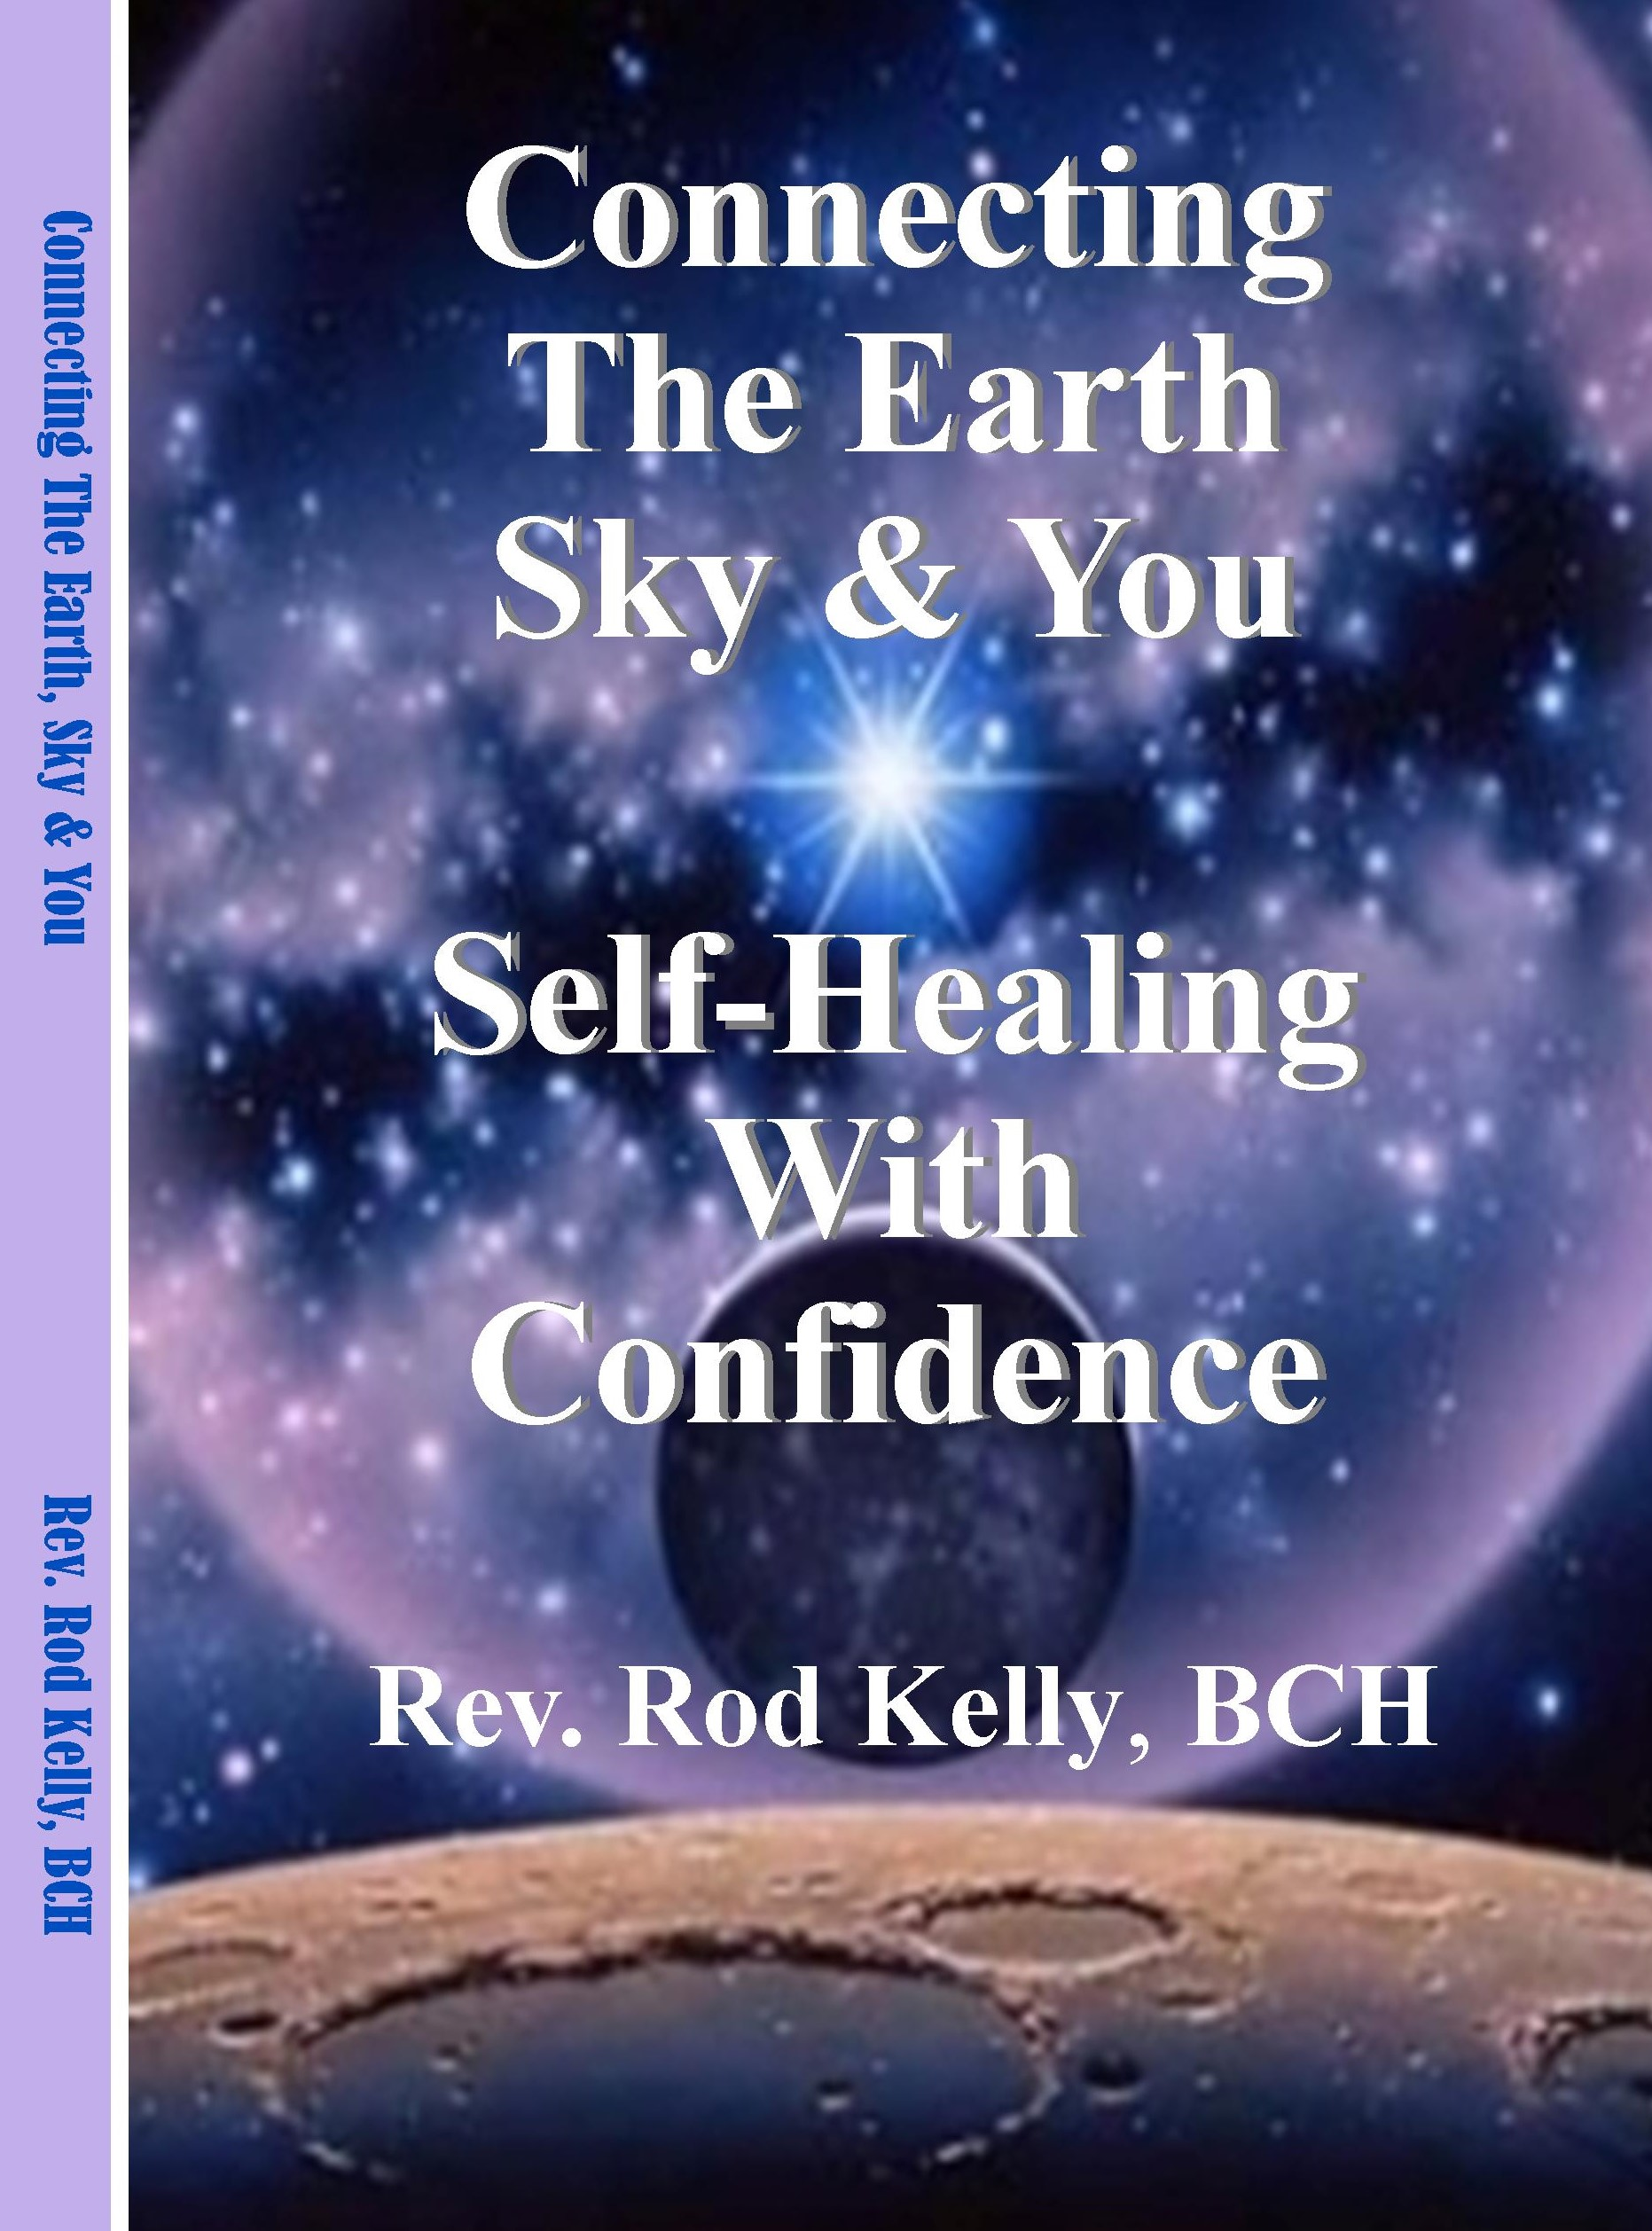 Connecting the earth Rod Kelly book